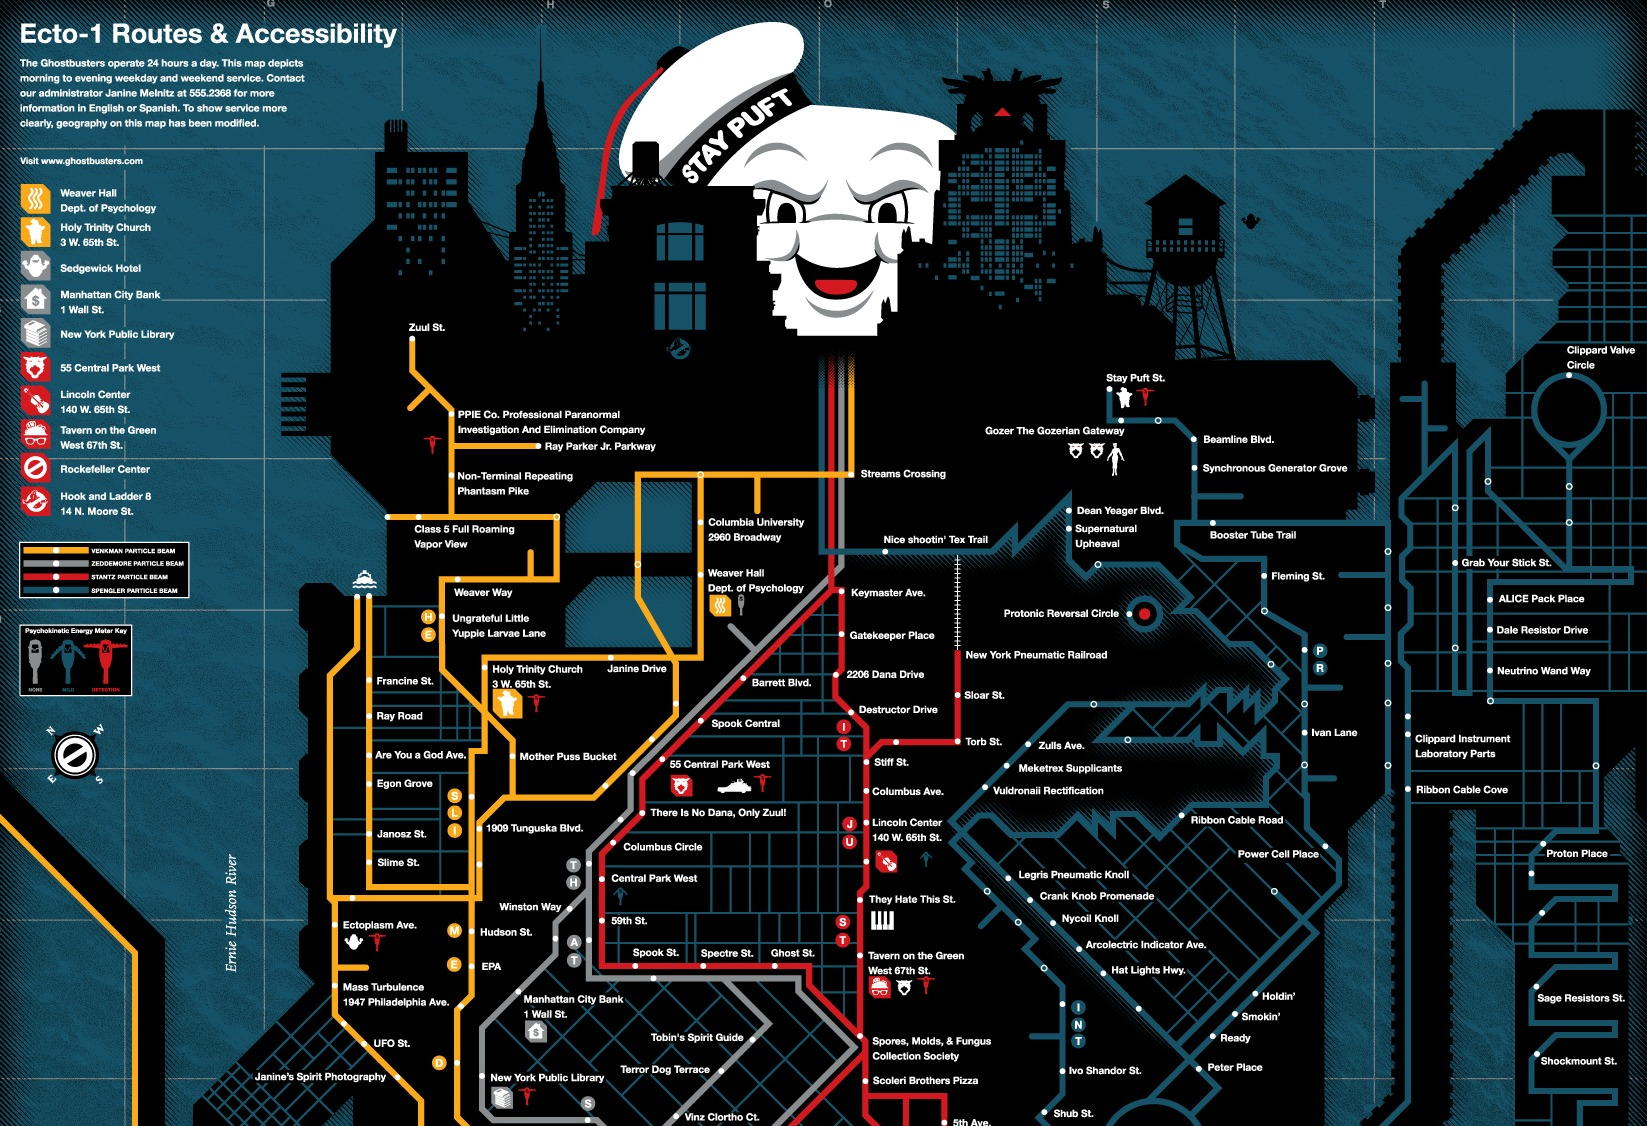 Dana S Apartment Building Ghostbusters the nyc 'ghostbusters' service map transforms the subway system